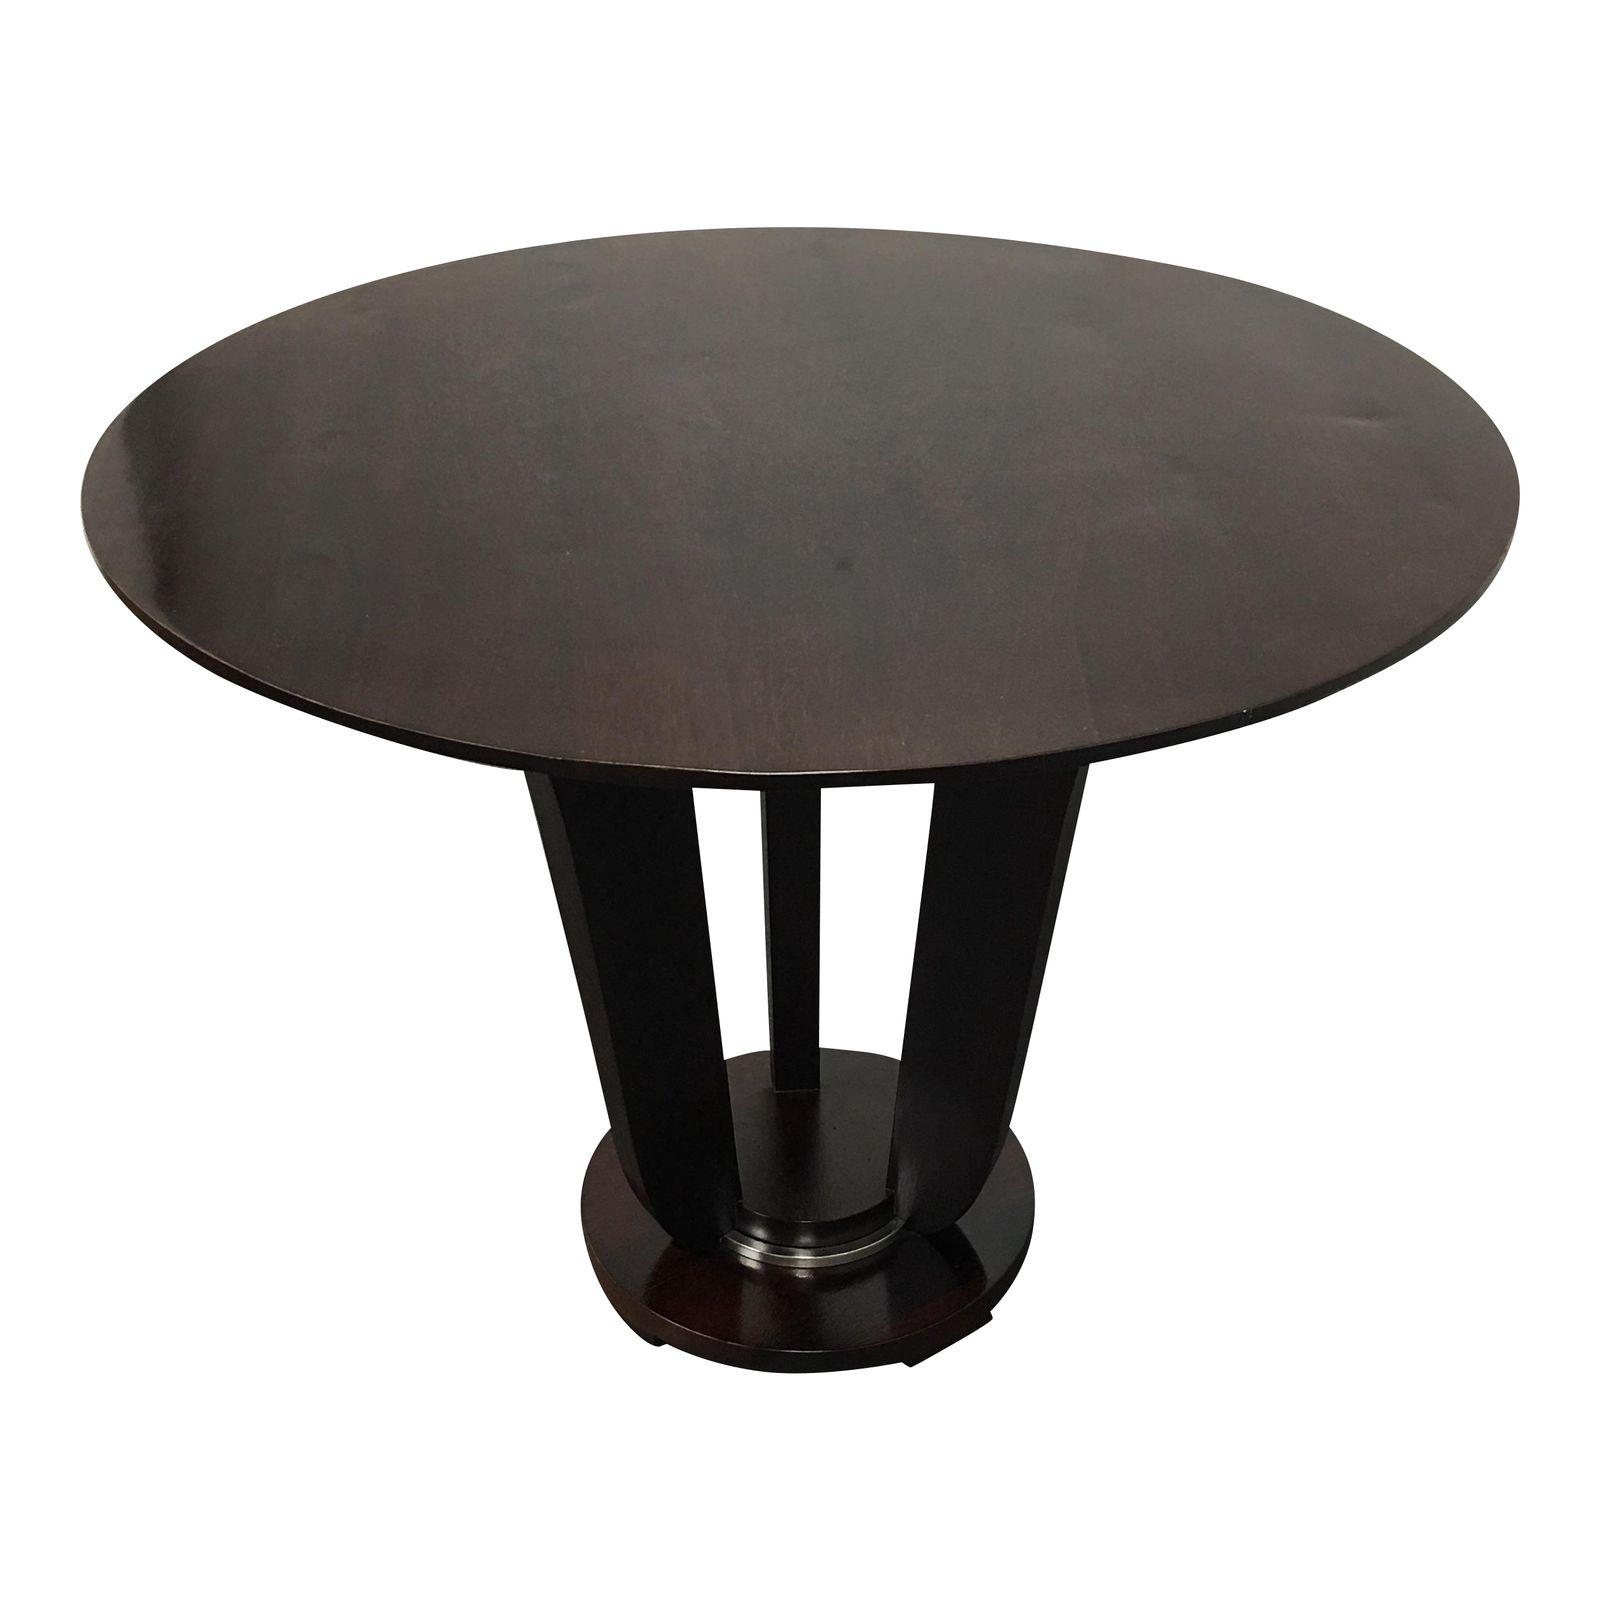 NEW Barbara Barry New Round Occasional Table From Baker Furniture   Design  Plus Gallery